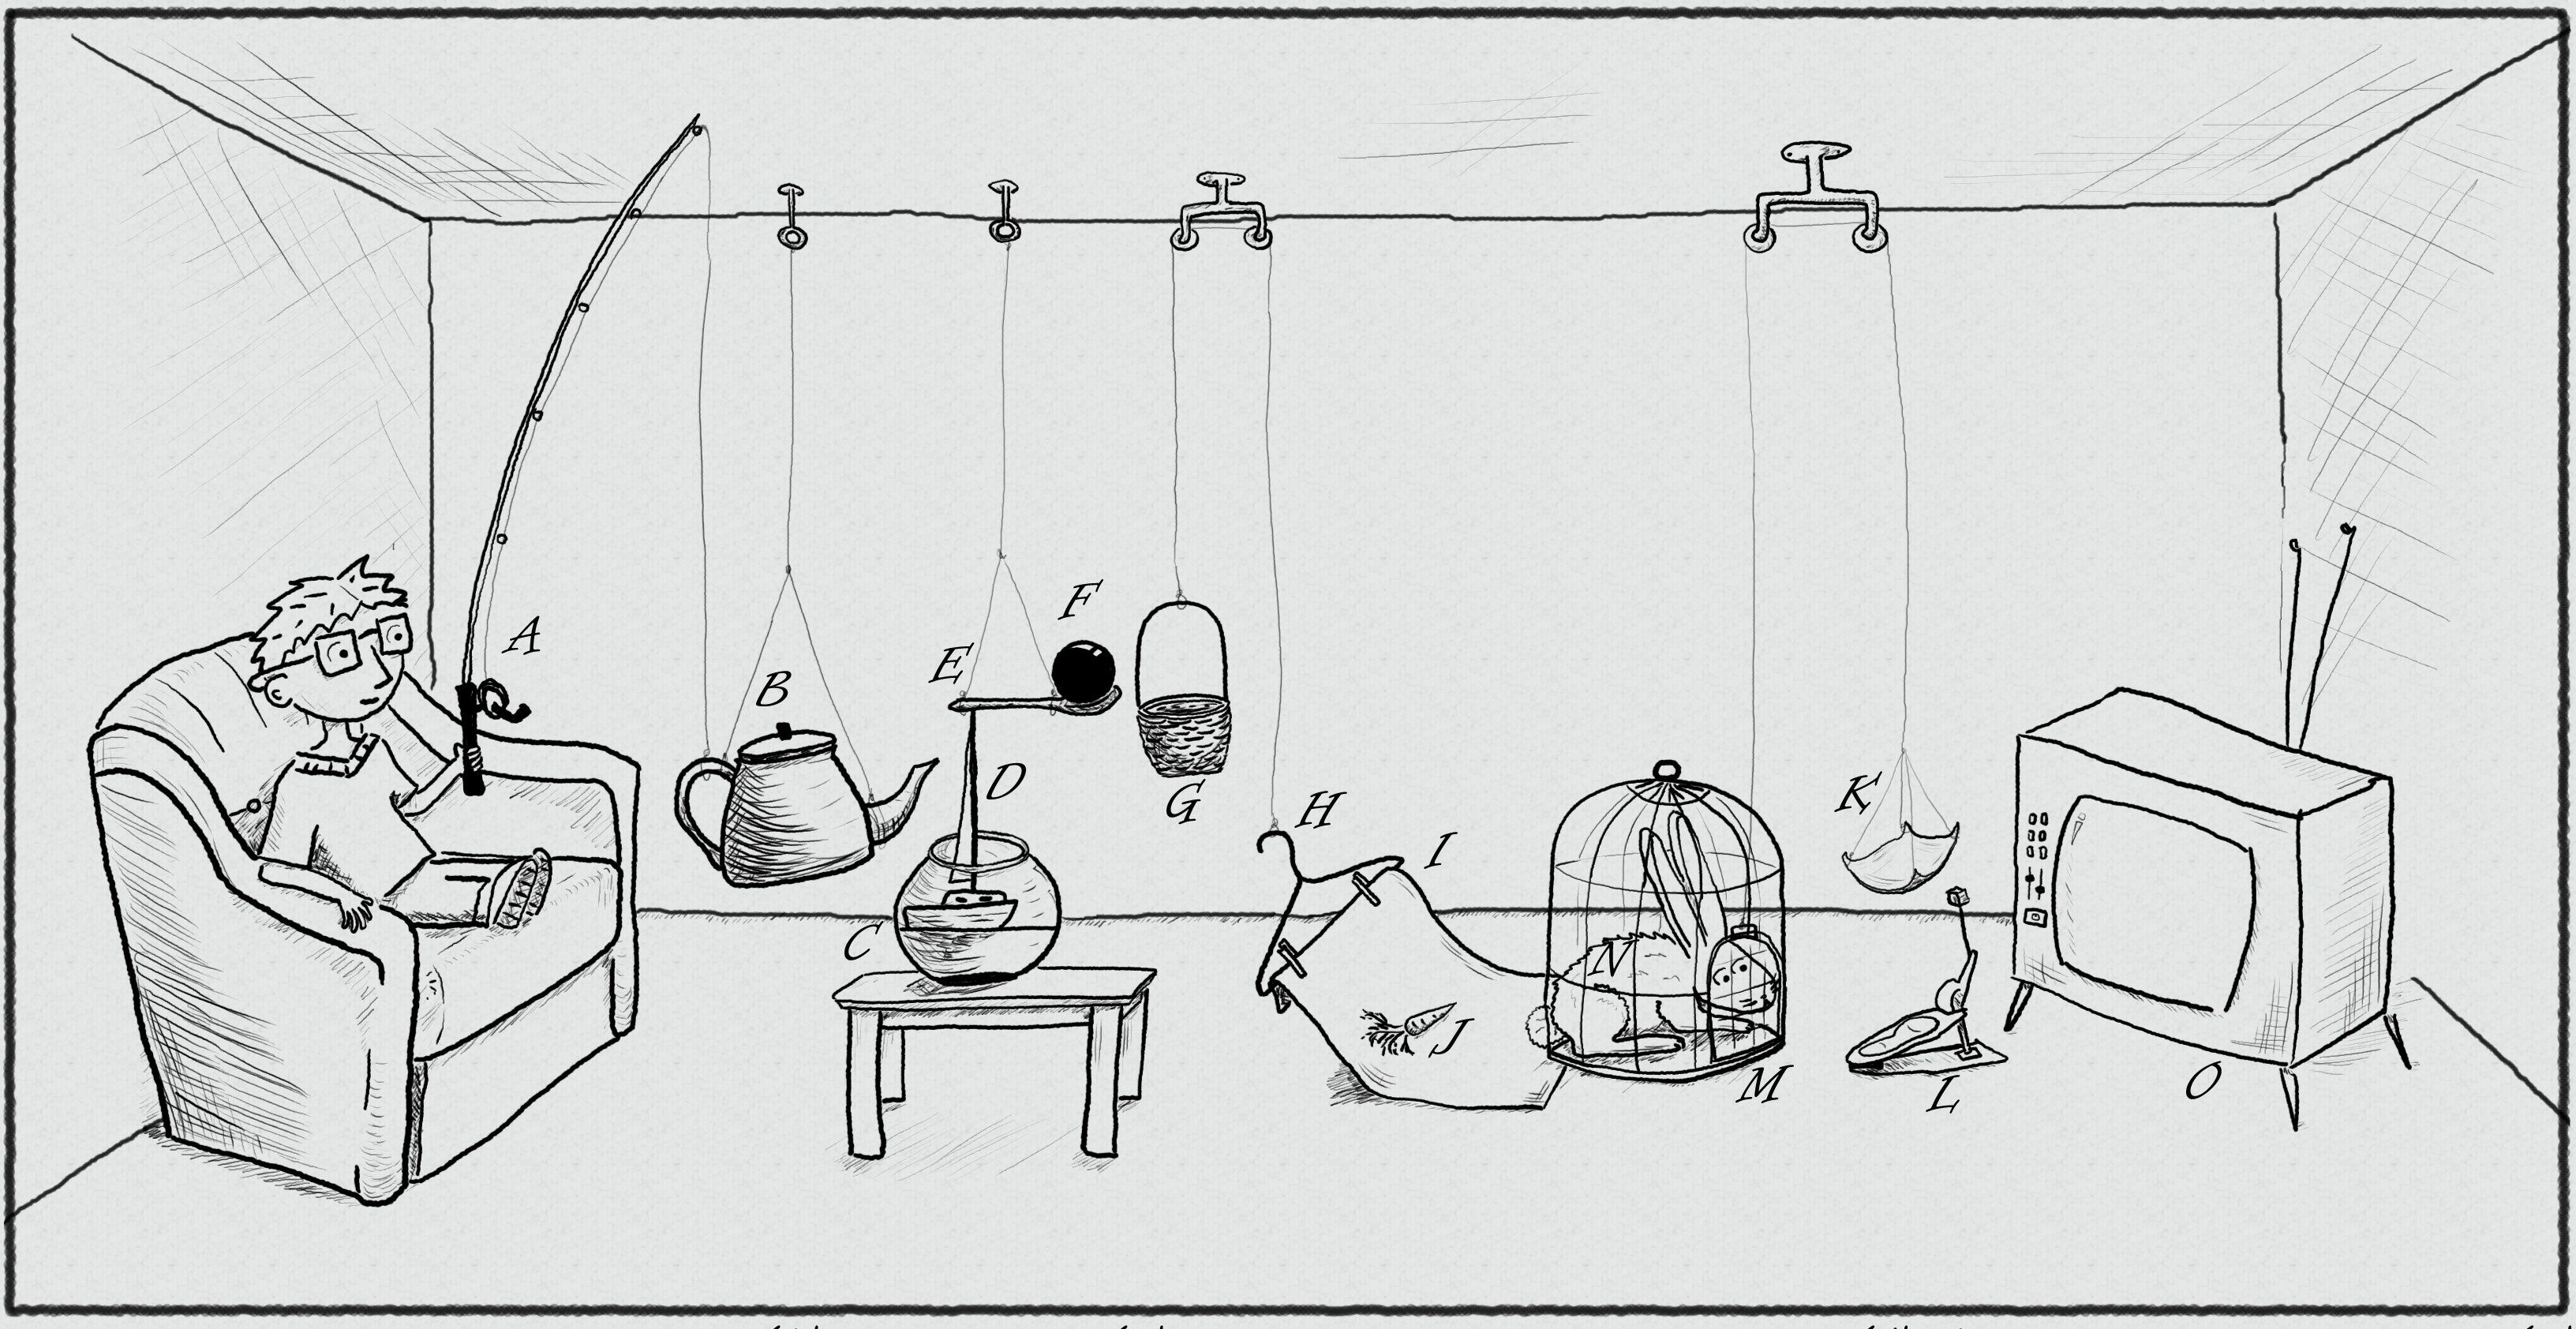 Rube Goldberg Machine Practice